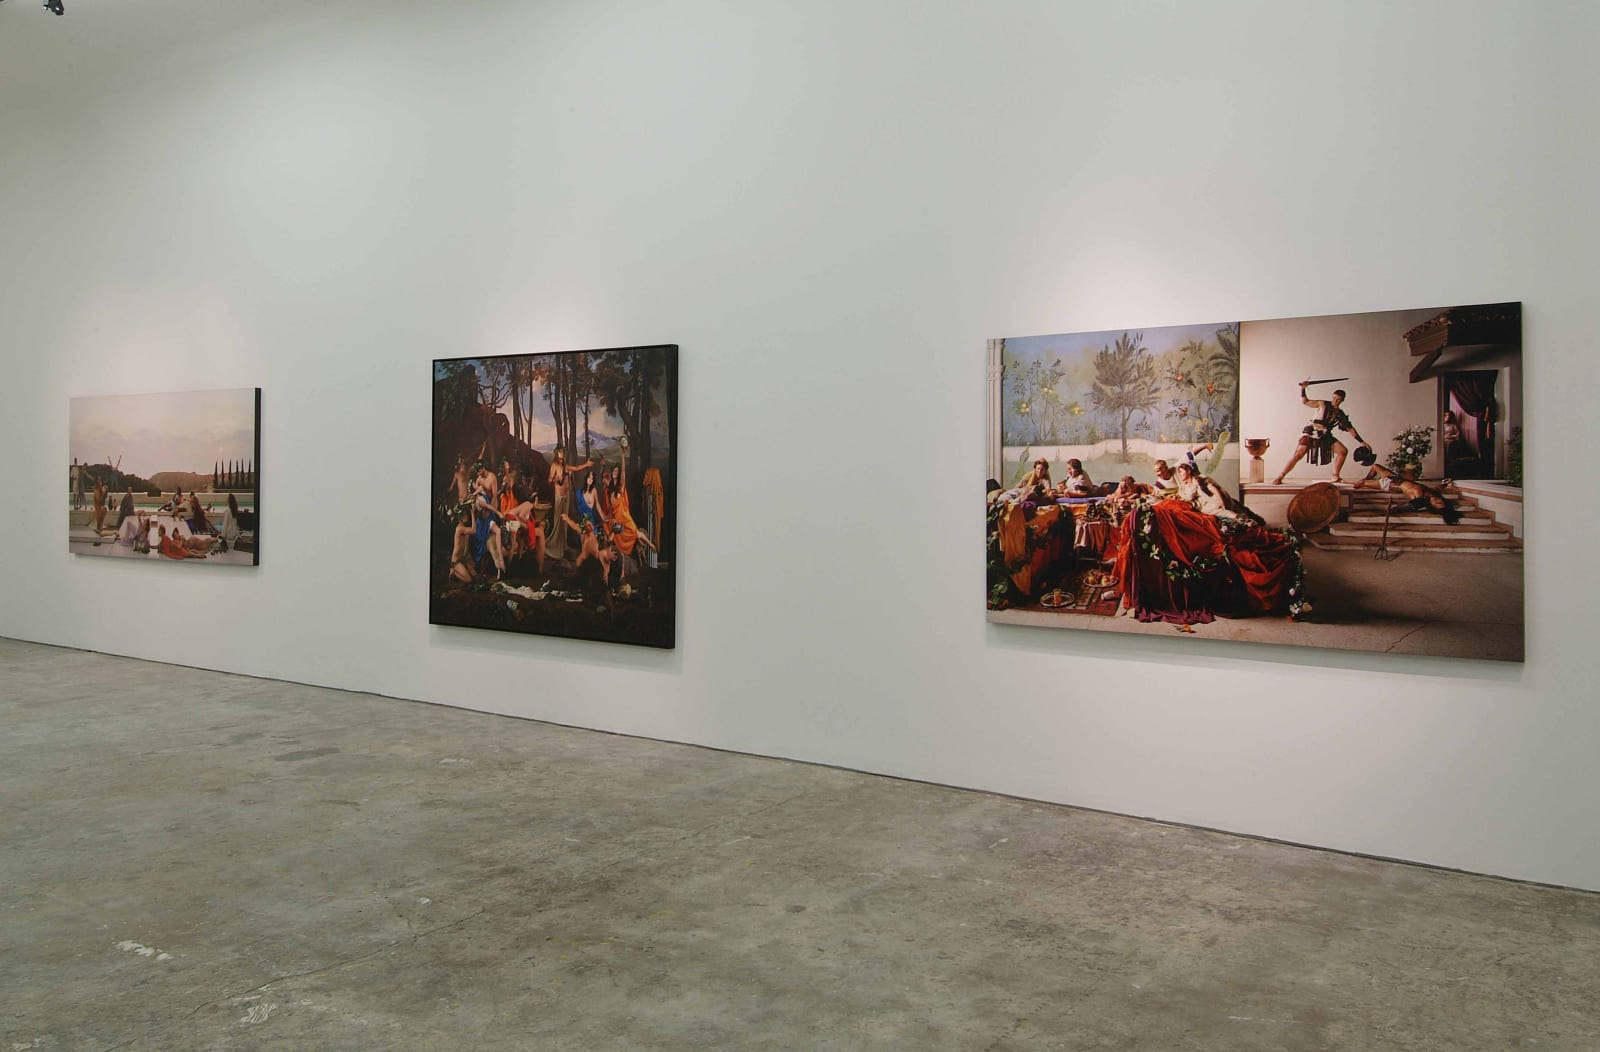 Eleanor Antin, The Empire of Signs, Exhibition view, 3 February - 14 April 2007, Erna Hecey Gallery, Brussels, Photo © Philippe de Gobert